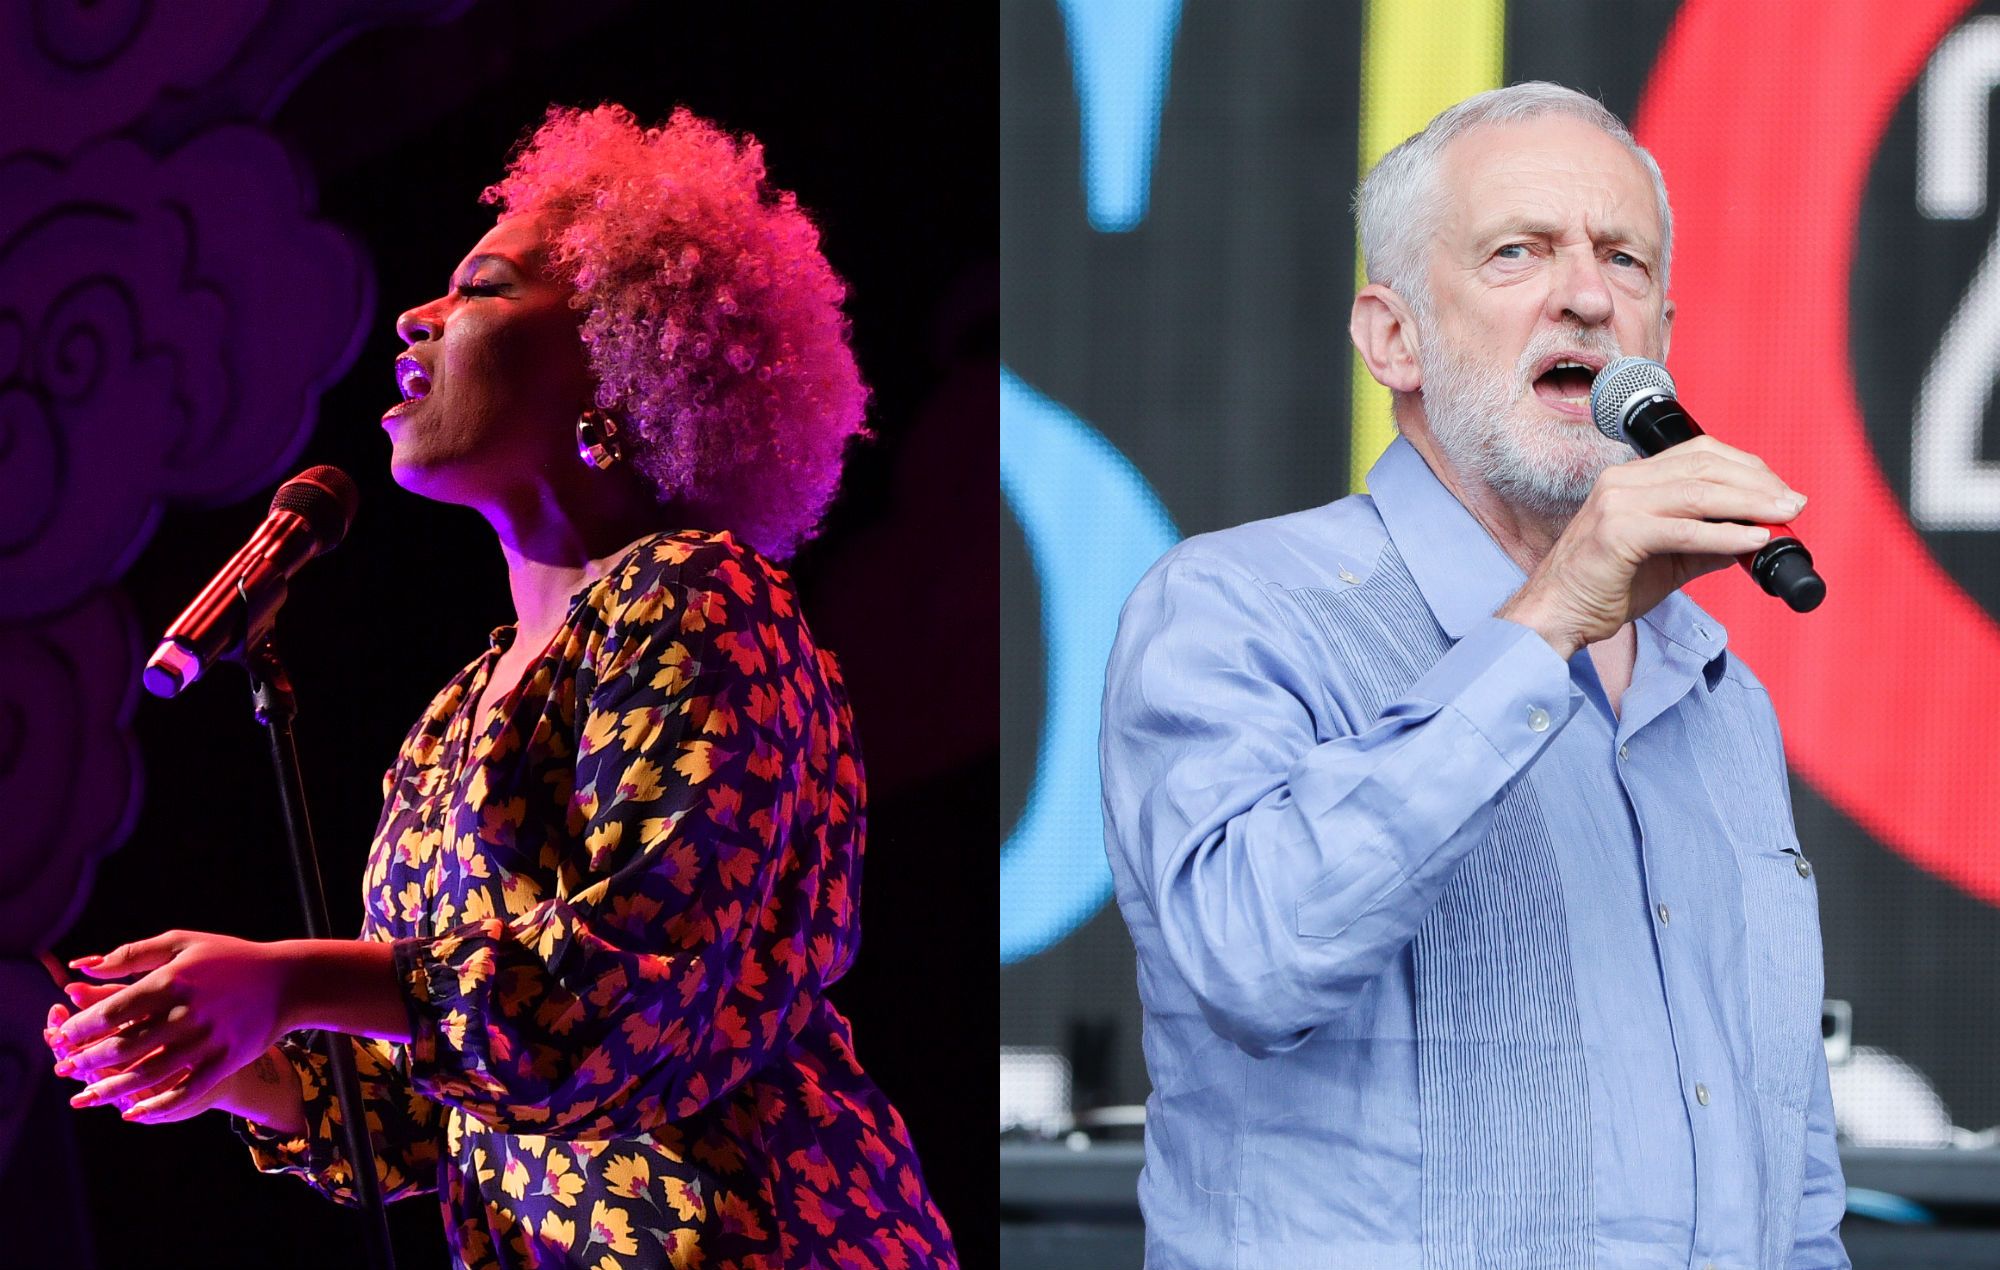 Emeli Sandé has shared a new video in support of Jeremy Corbyn.